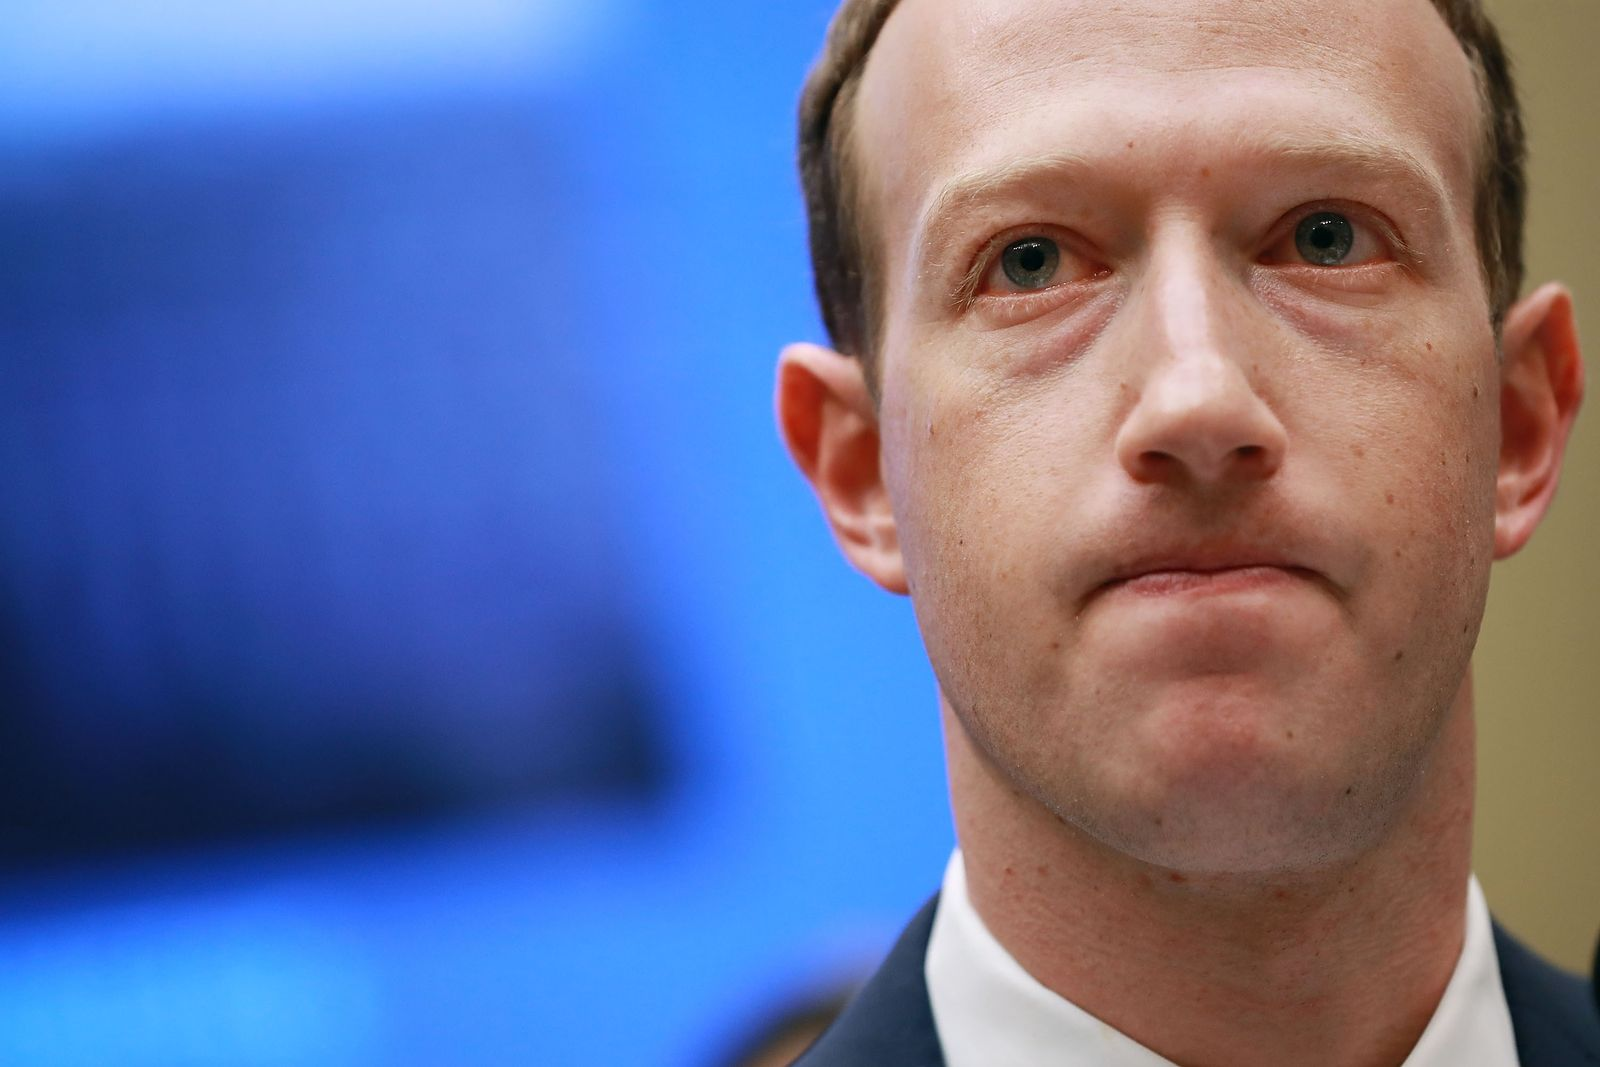 US-FACEBOOK-CEO-MARK-ZUCKERBERG-TESTIFIES-AT-HOUSE-HEARING